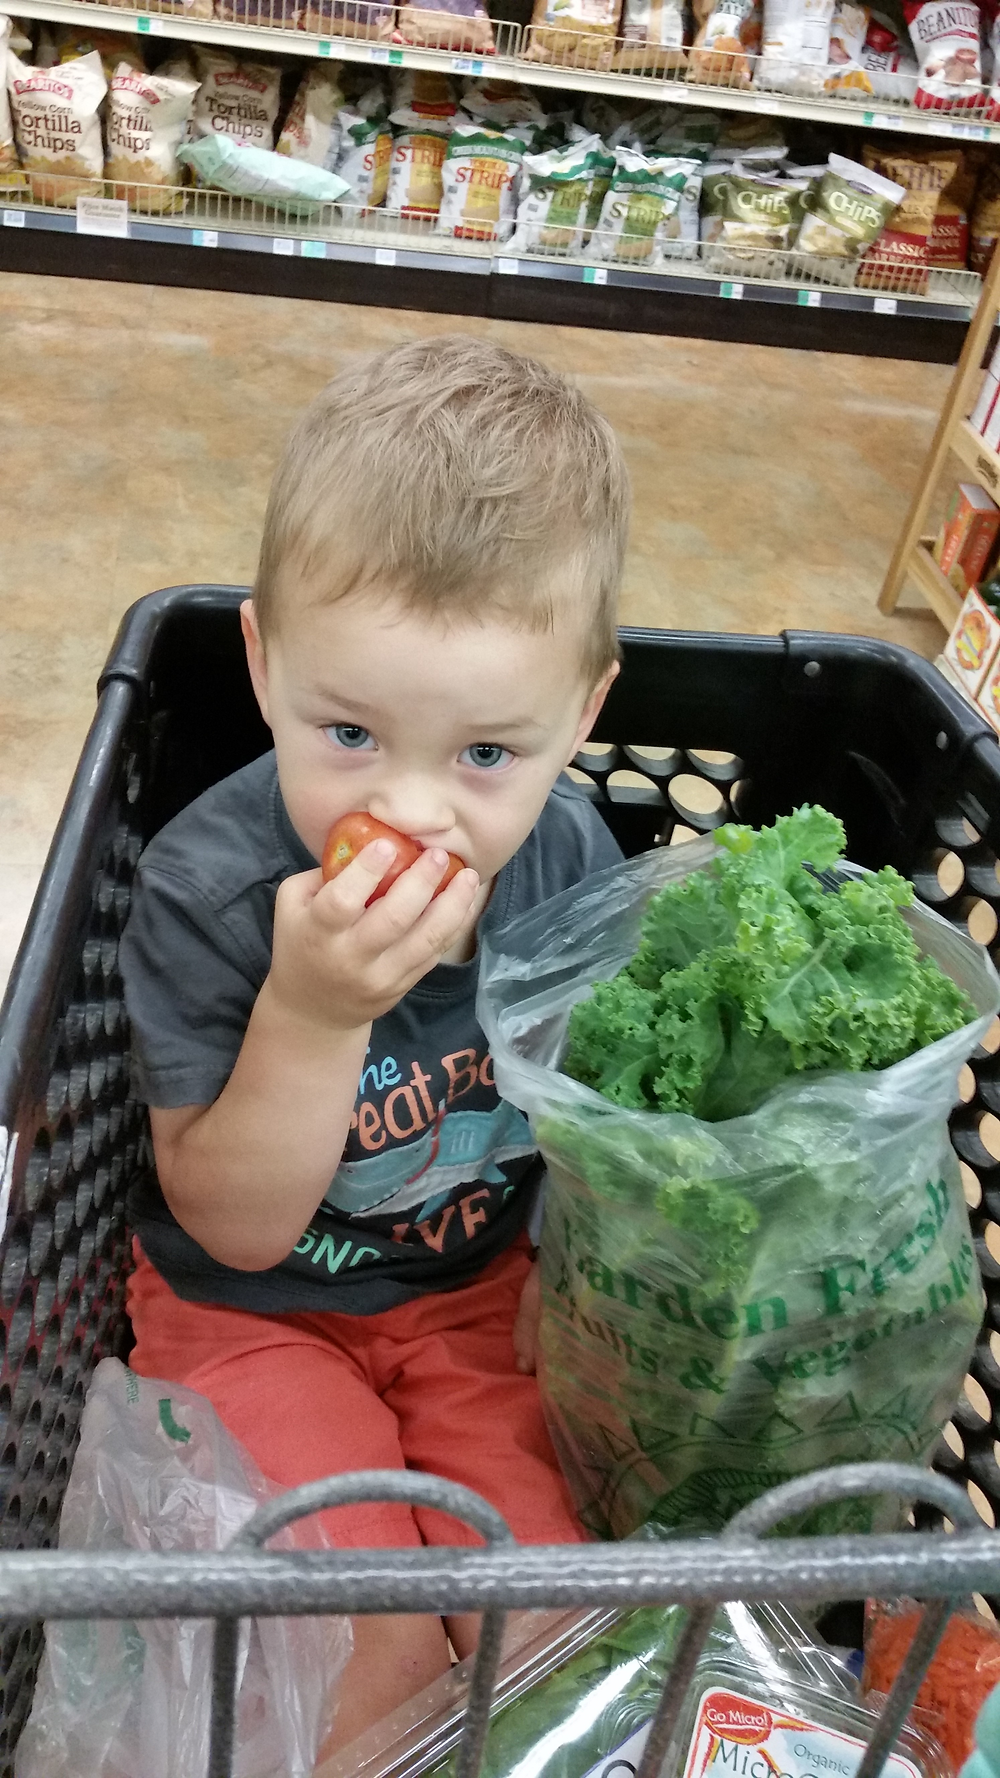 Kids will eat anything when they're hungry - adults too!